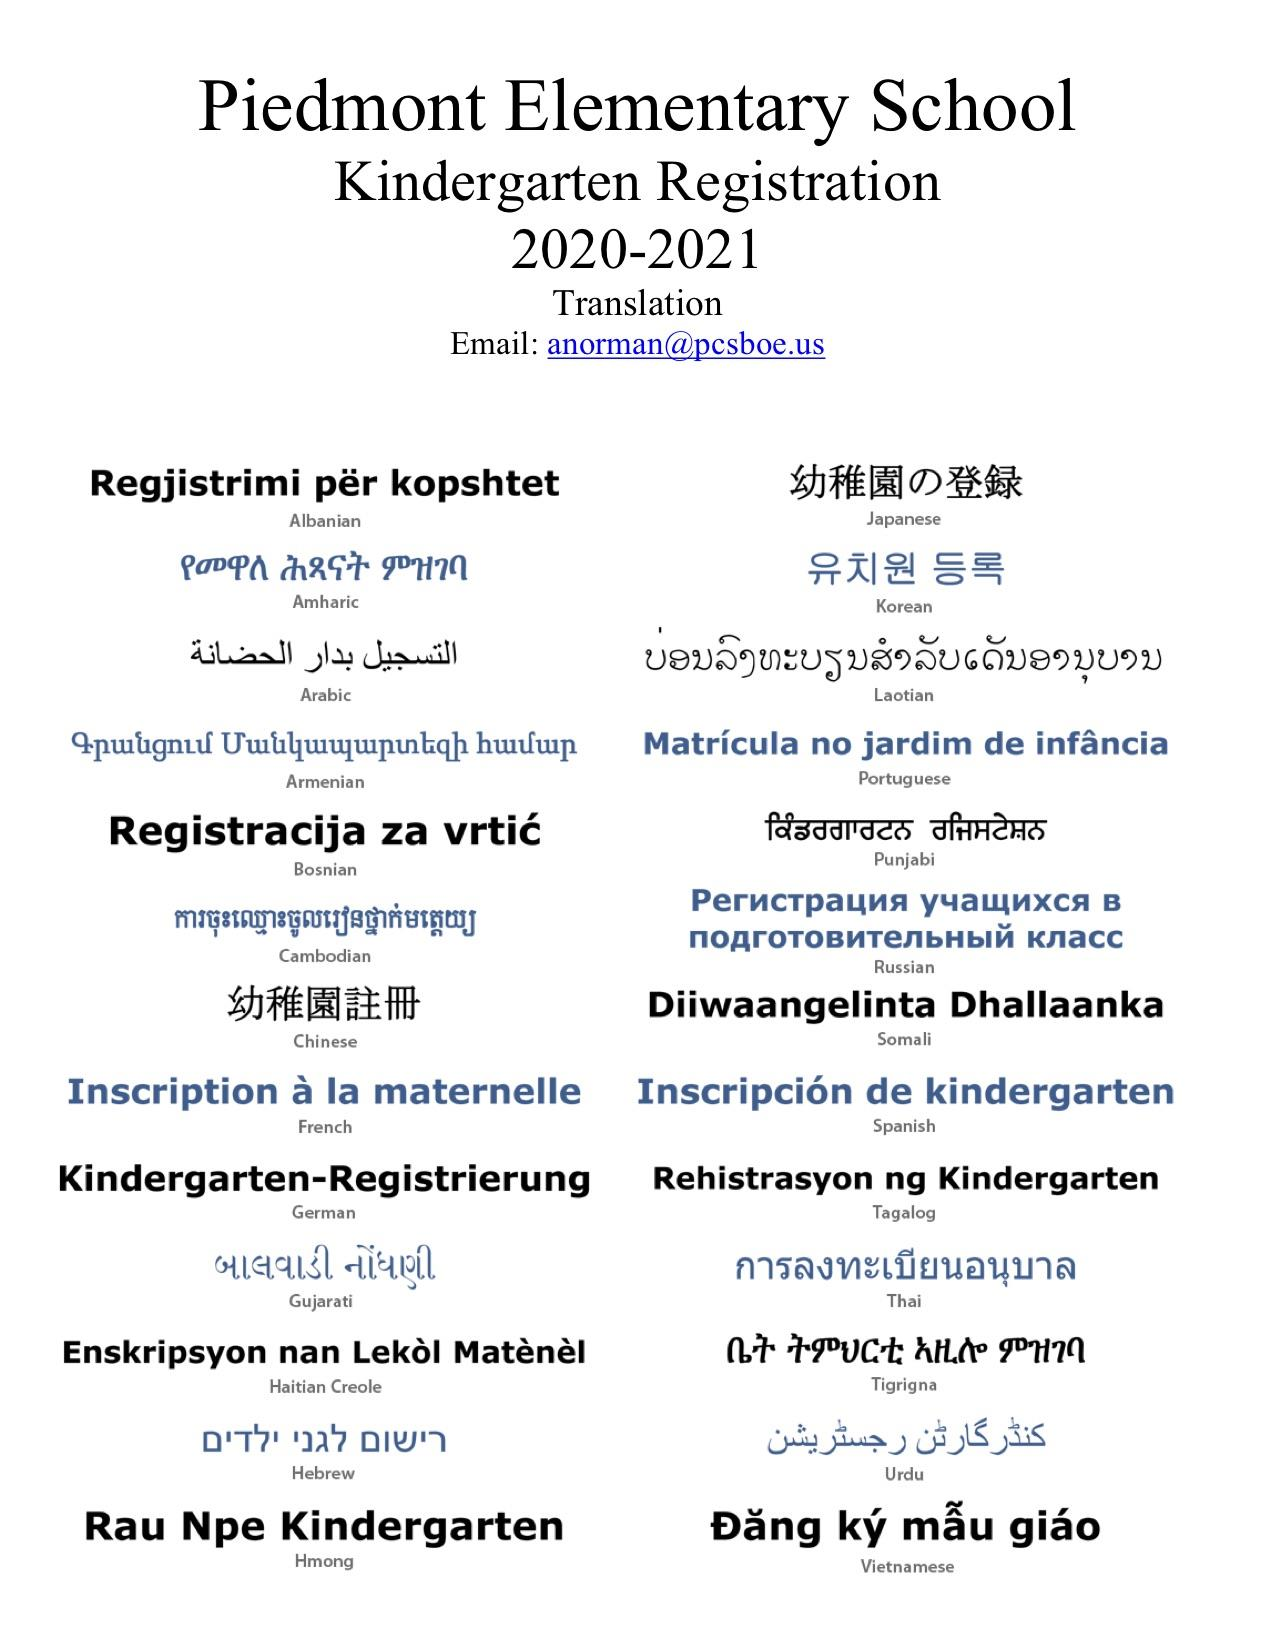 Kindergarten registration information translated information